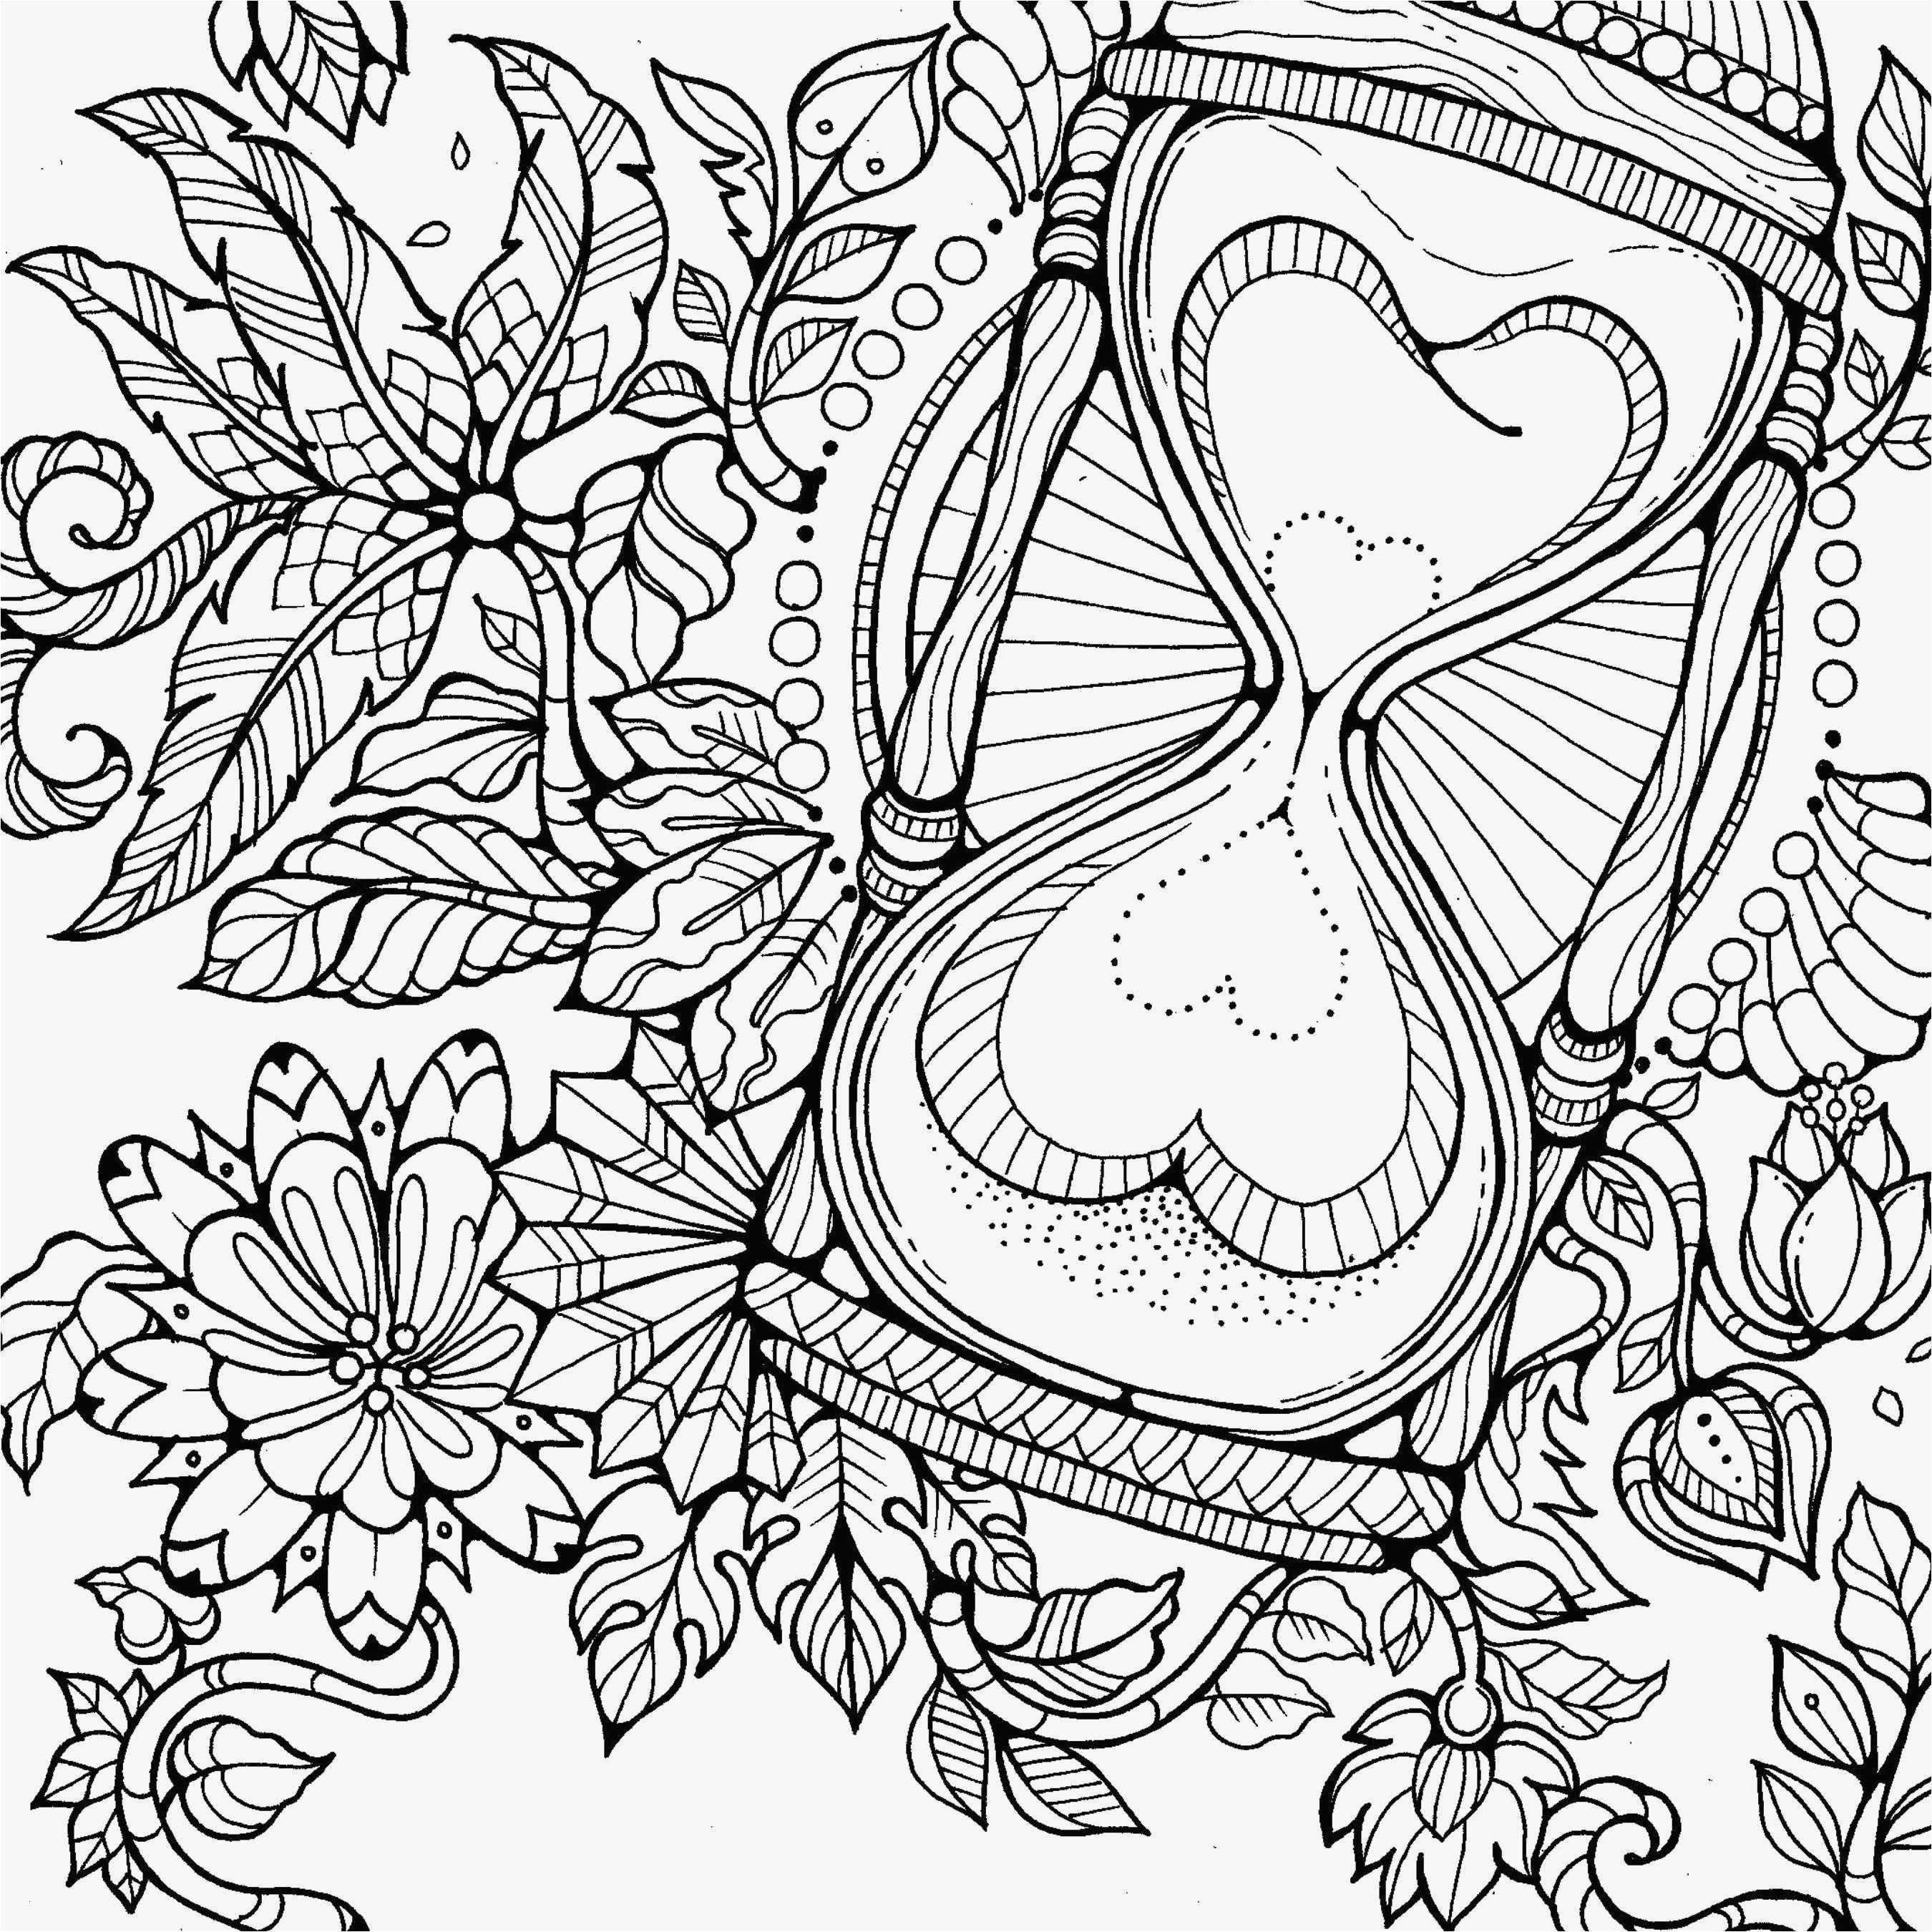 Zentangle Coloring Pages  Printable 9d - Free For kids